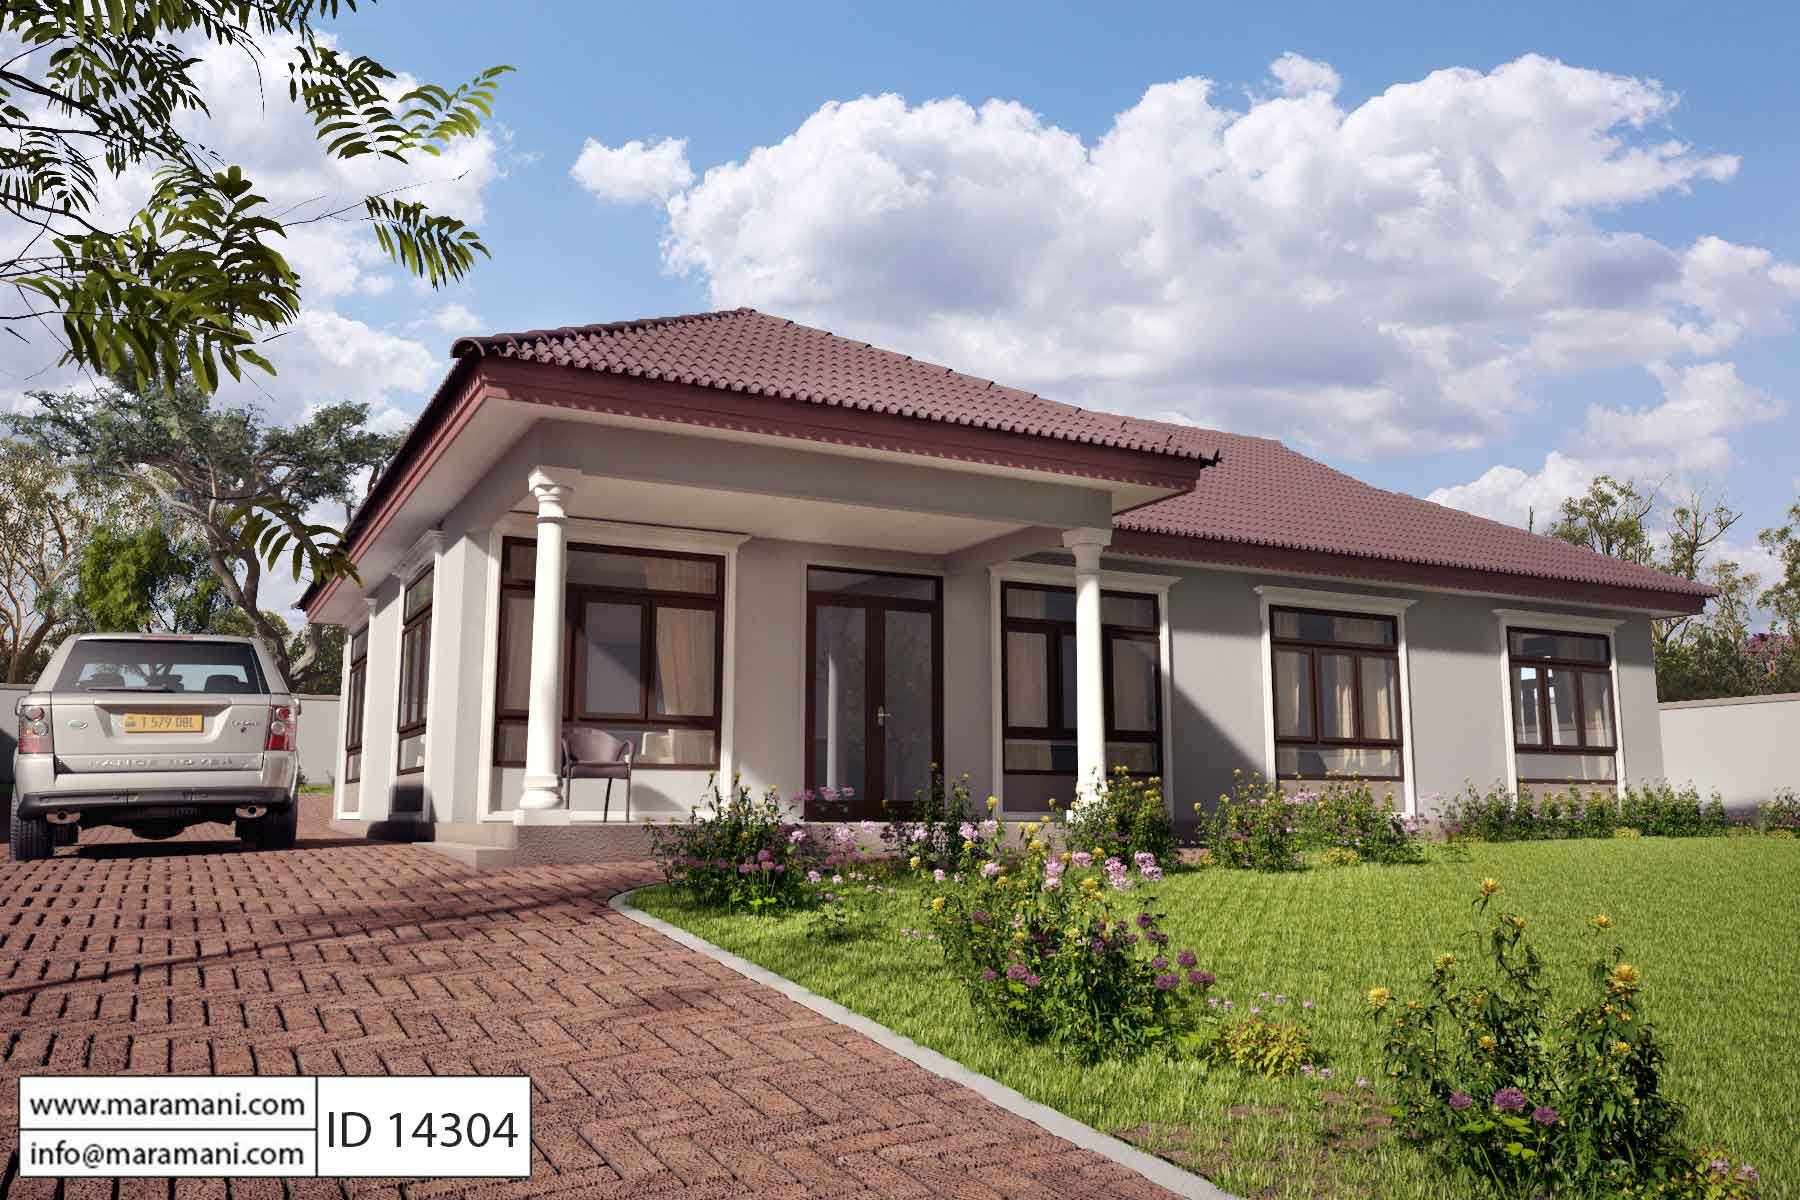 4 bedroom house plan id 14304 - Four Bedroom House Plans